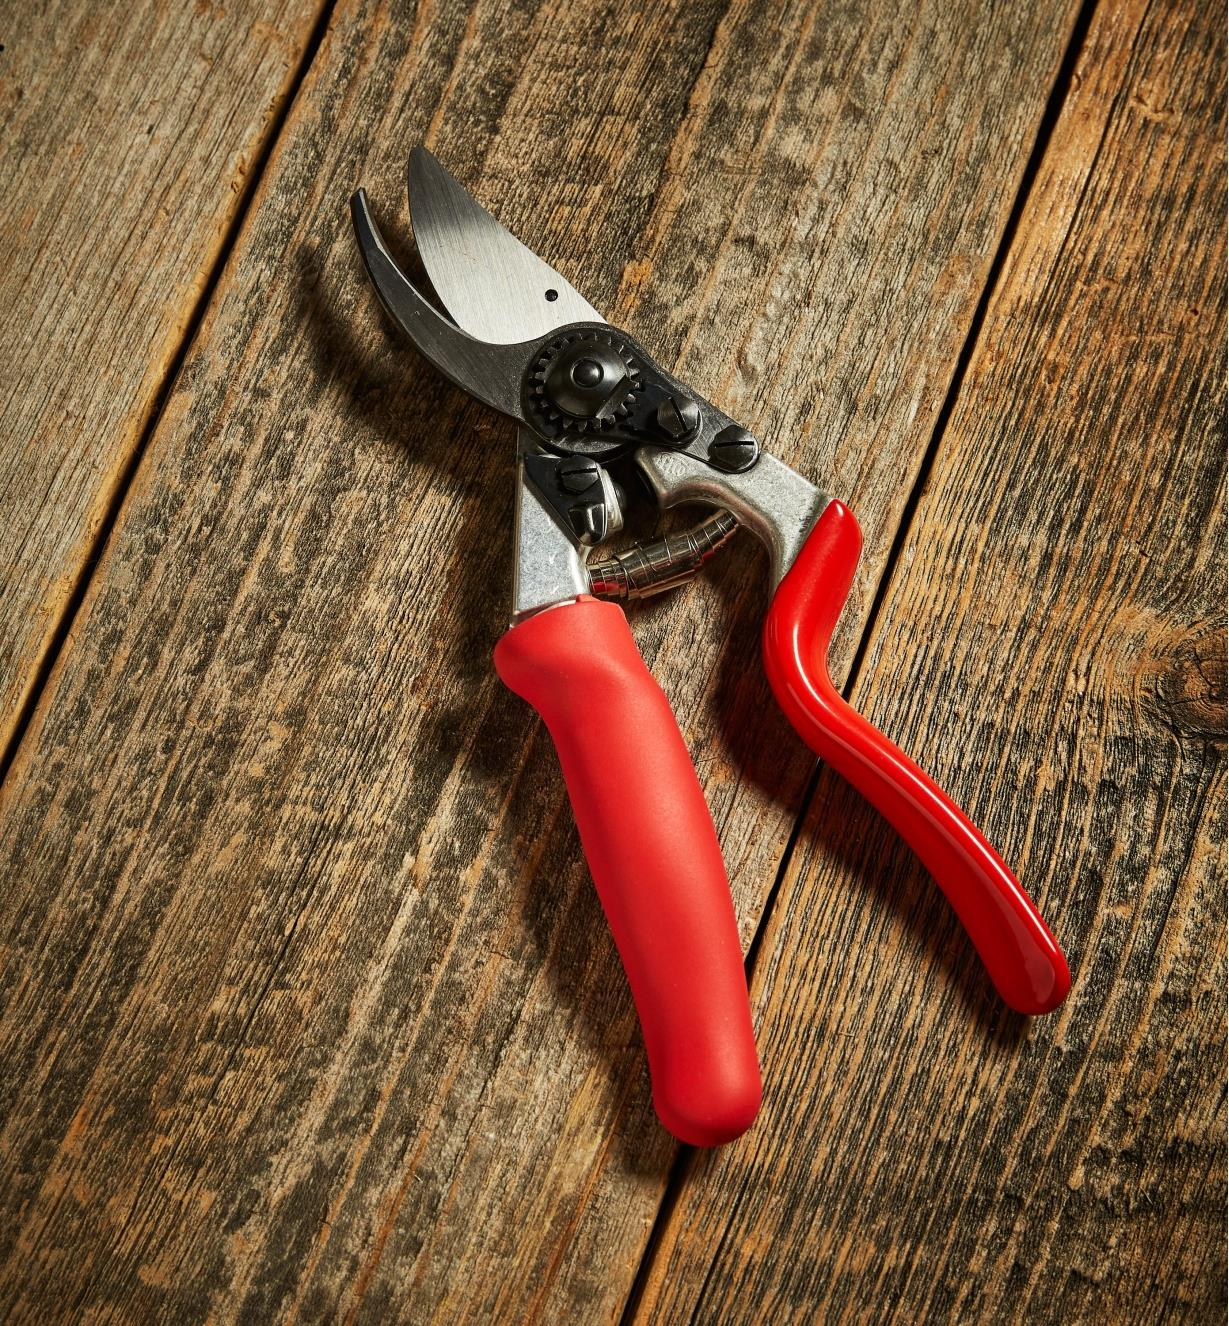 AB206 - Felco #7 Pruner, Right Hand